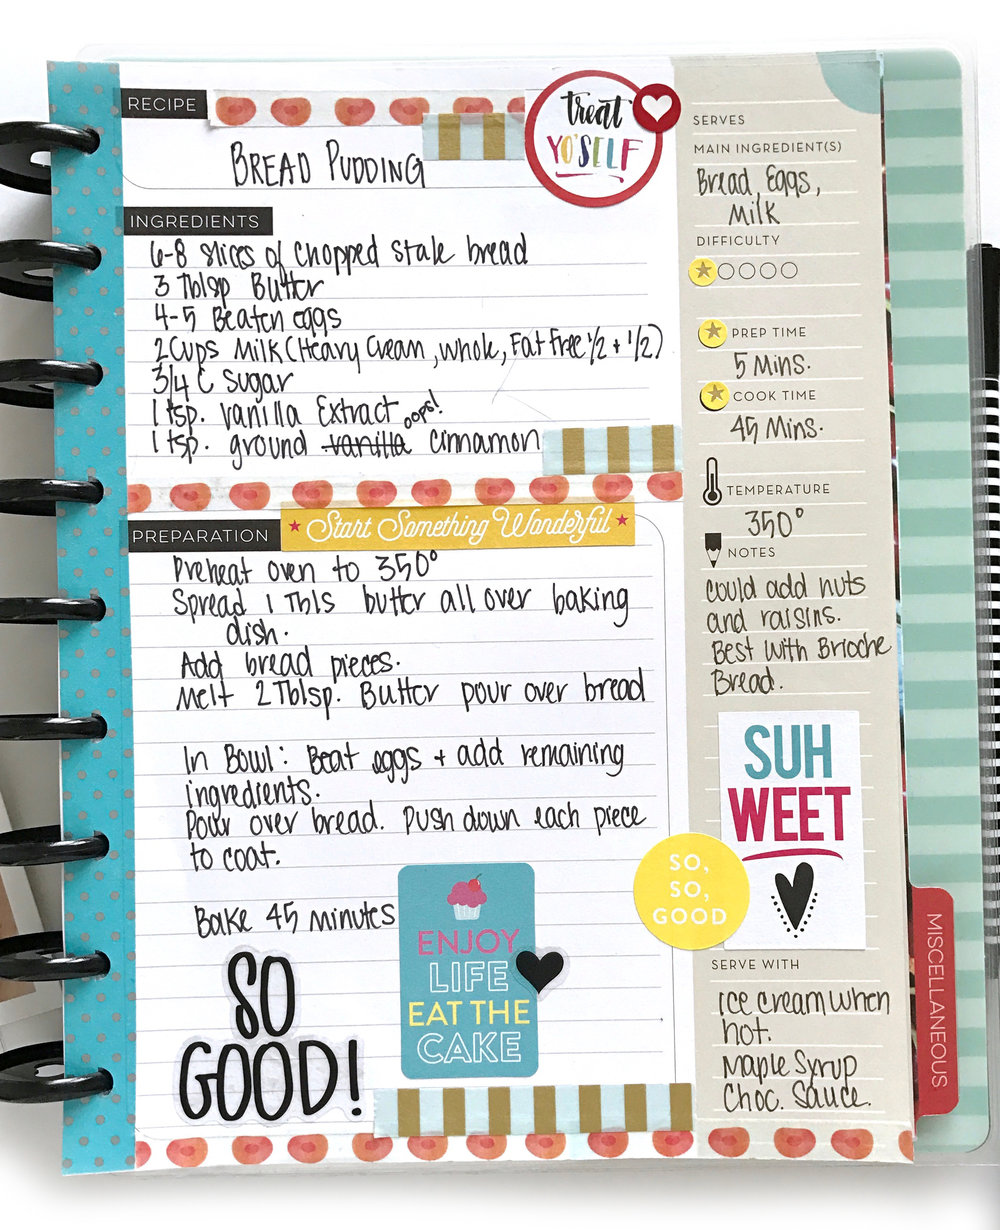 Bread Pudding in The Happy Planner® Recipe Organizer by mambi Design Team member Mary-Ann Maldonado | me & my BIG ideas